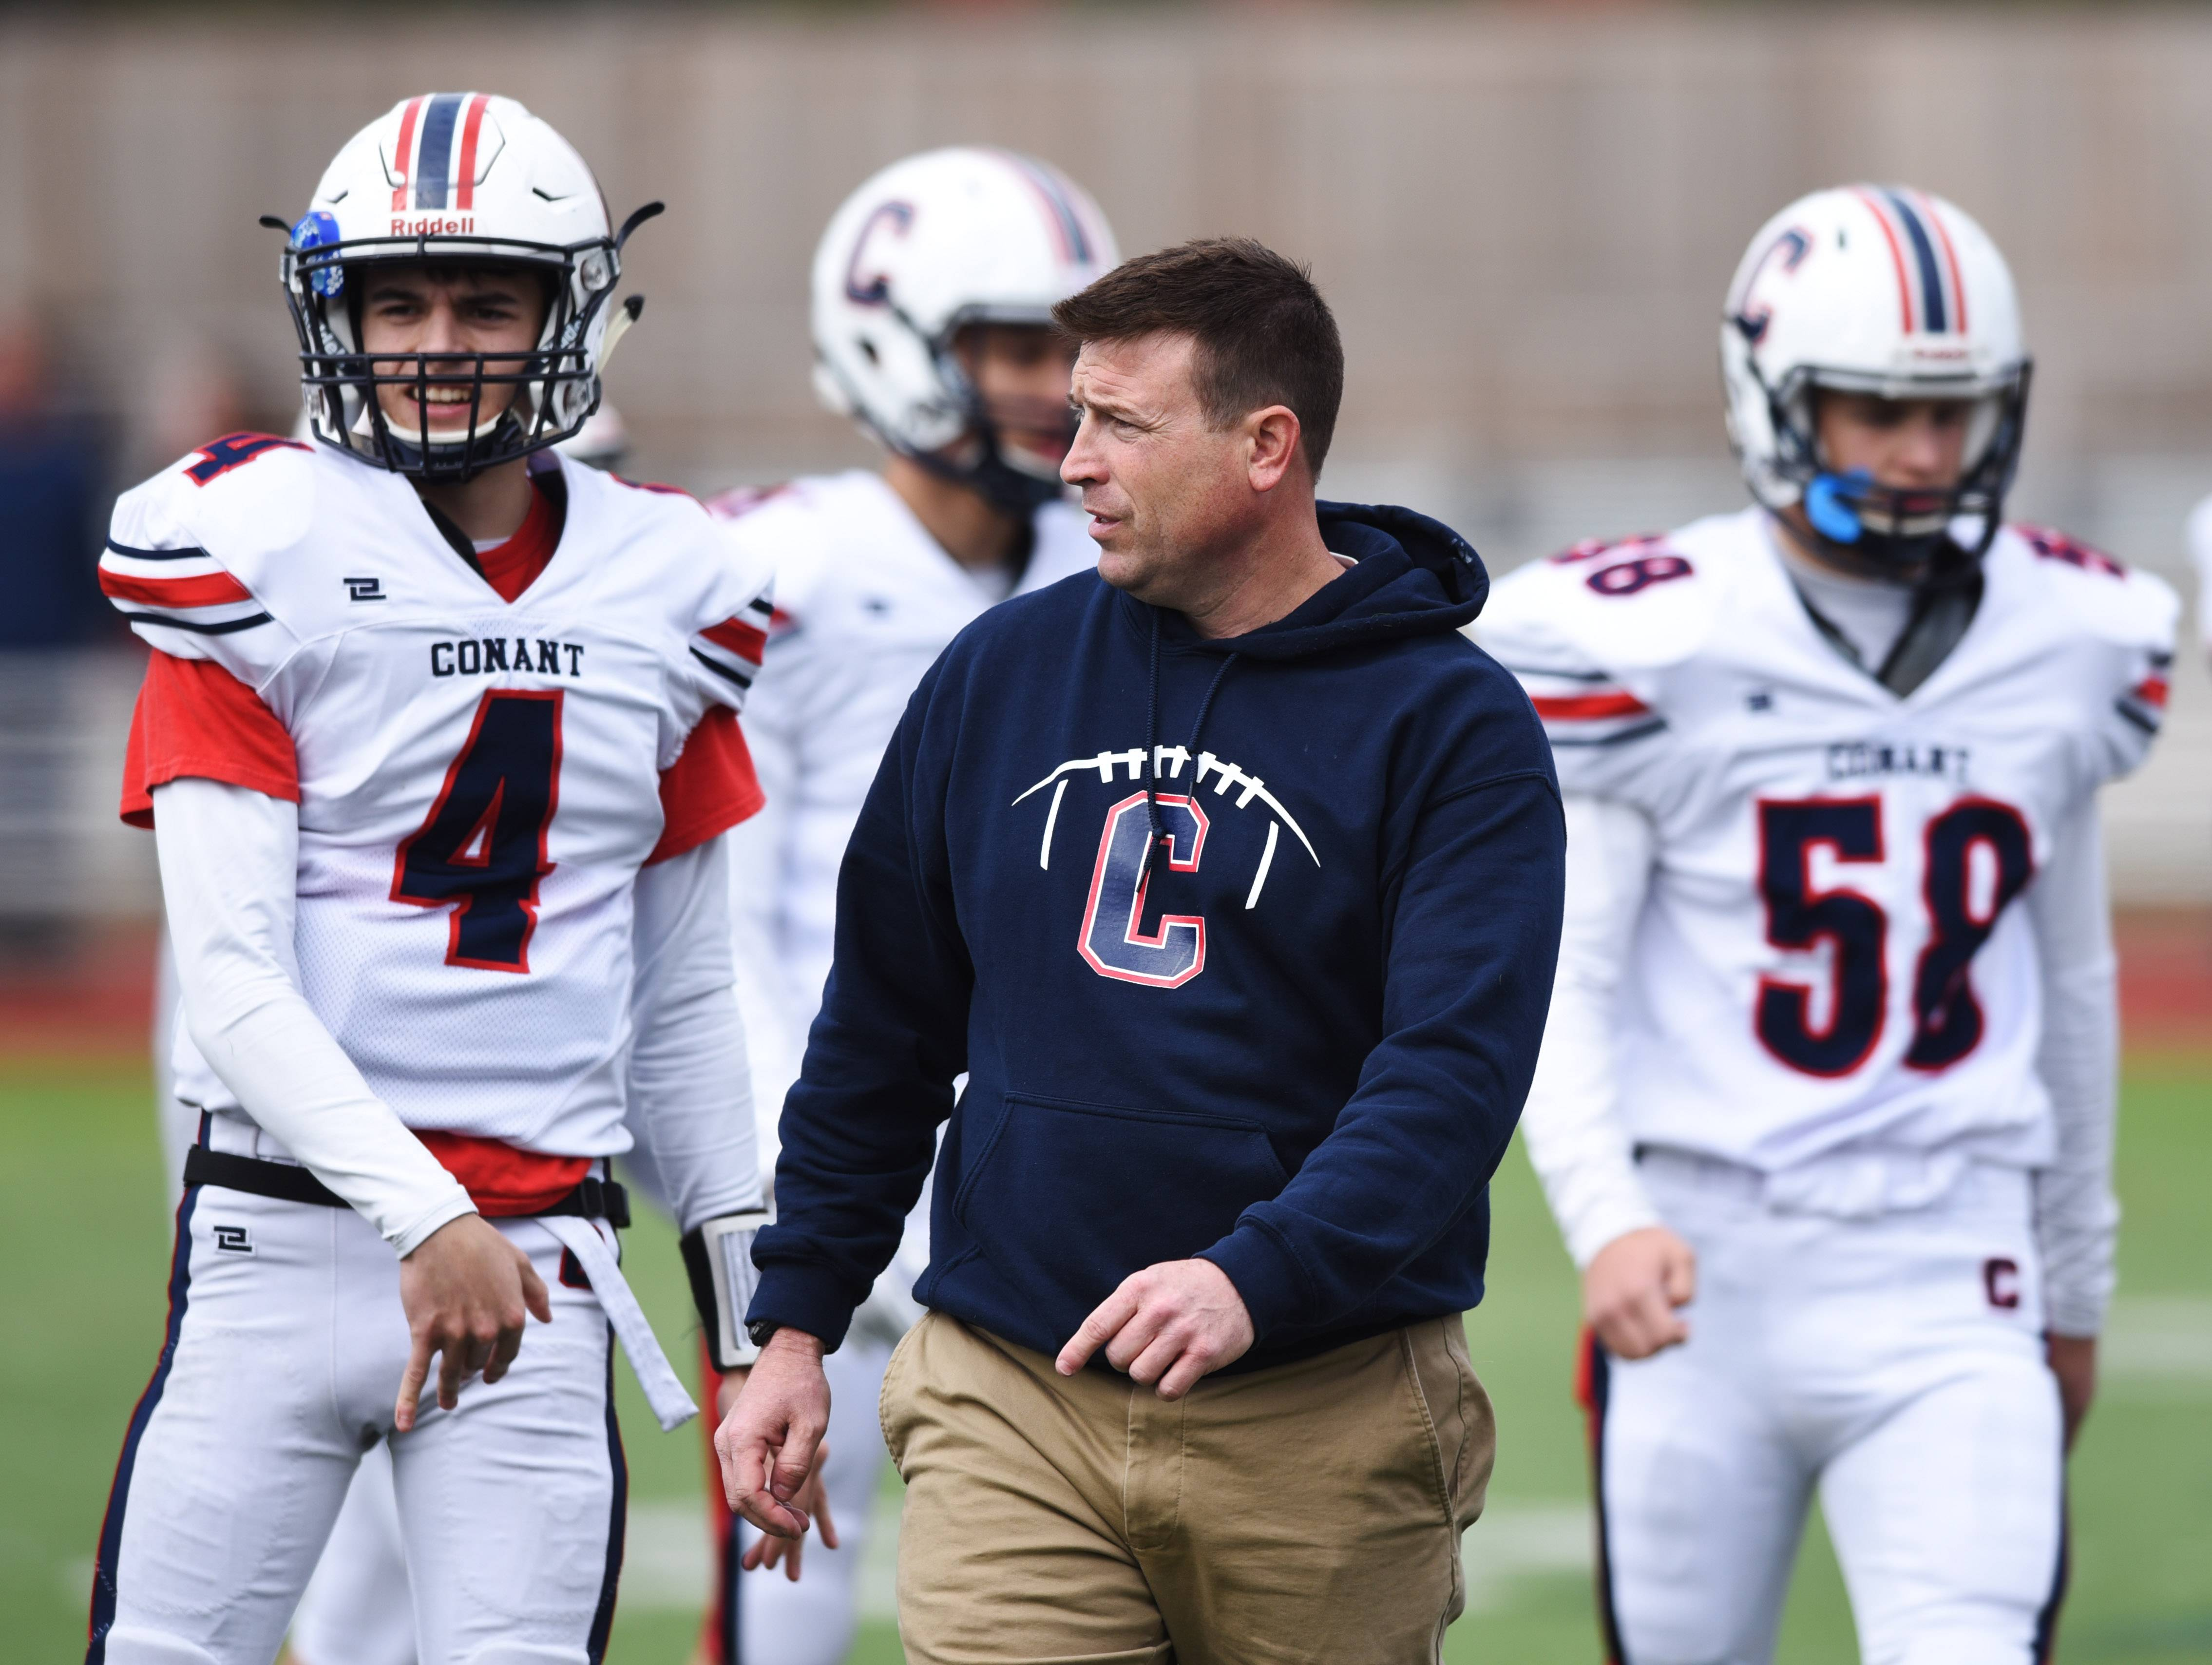 Conant head coach Bryan Stortz talks to his team, including quarterback Kevin Polaski, left, during a timeout in Saturday's Class 8A playoff game against Hinsdale Central.